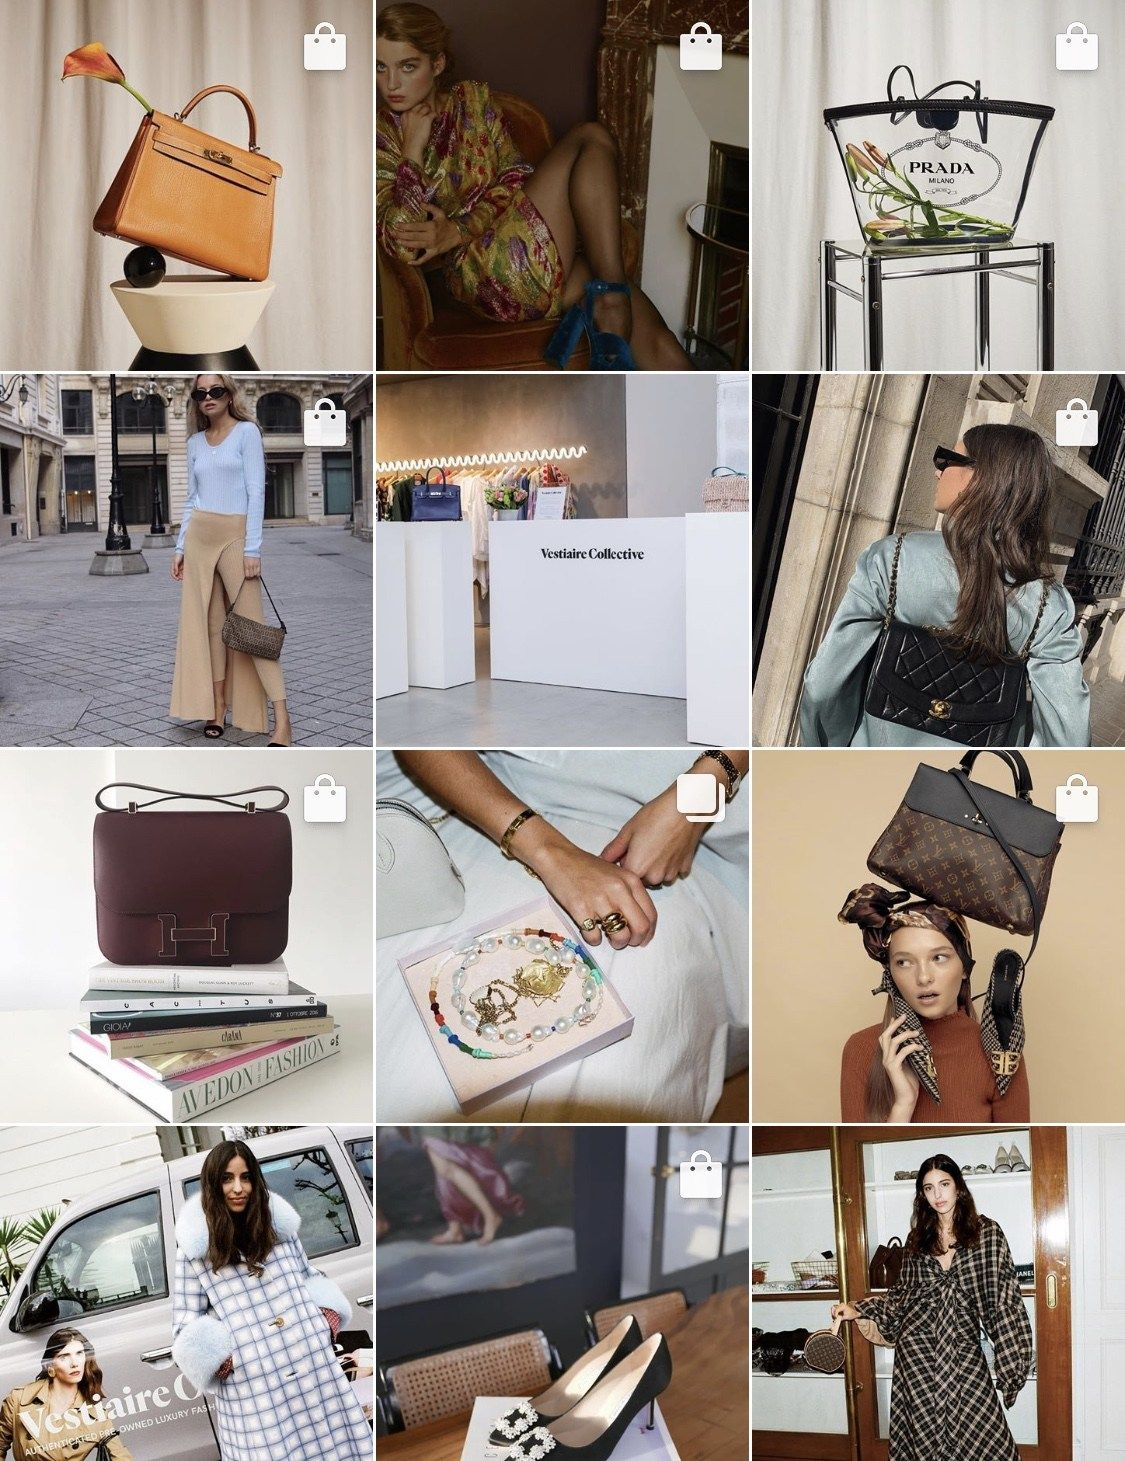 9 Online Platforms To Buy Vintage And Second Hand Fashion